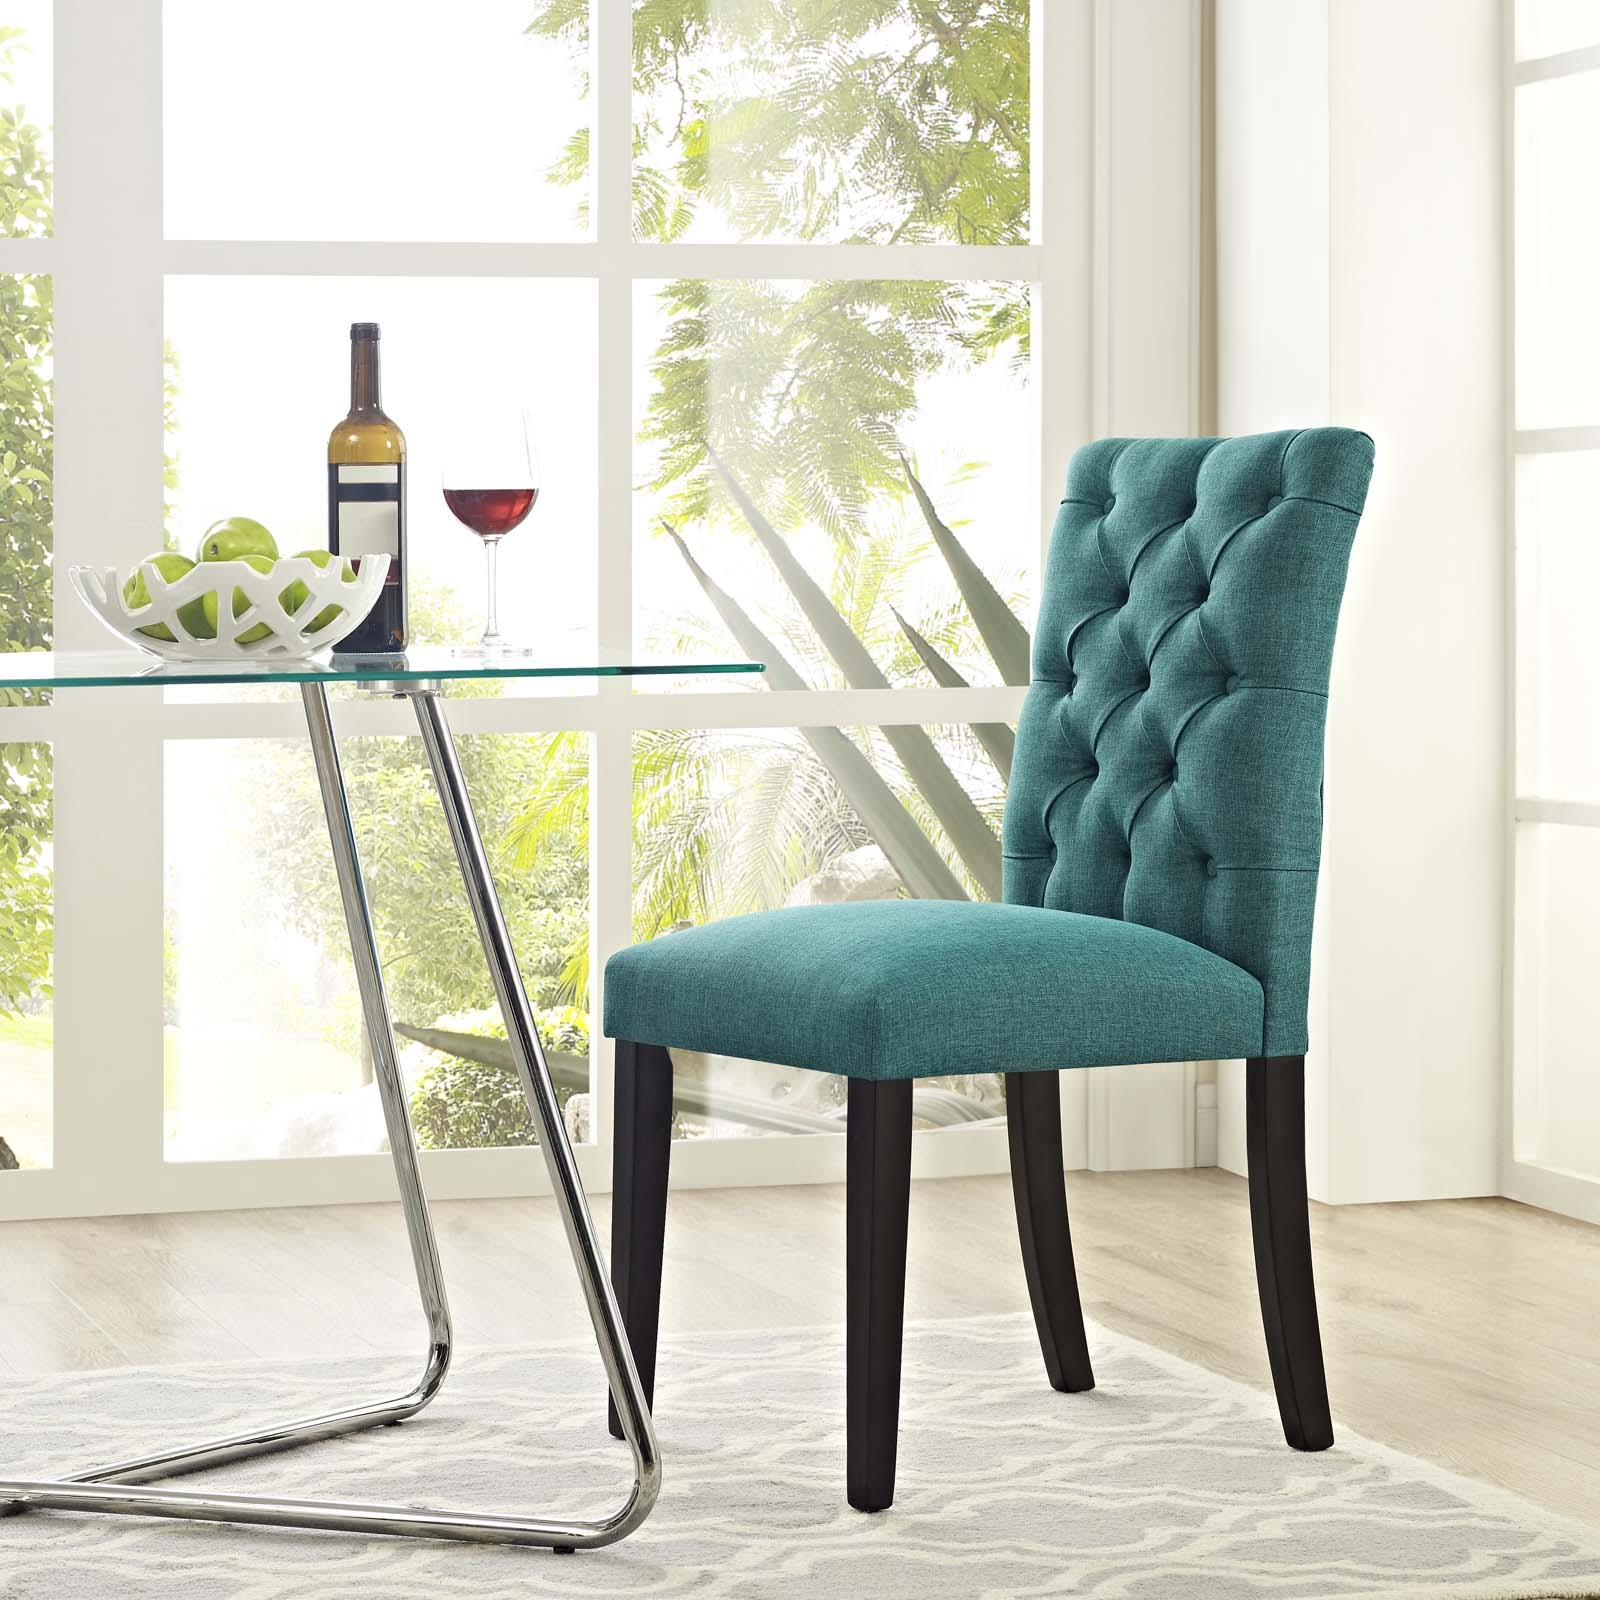 Duchess Fabric Dining Chair in Teal